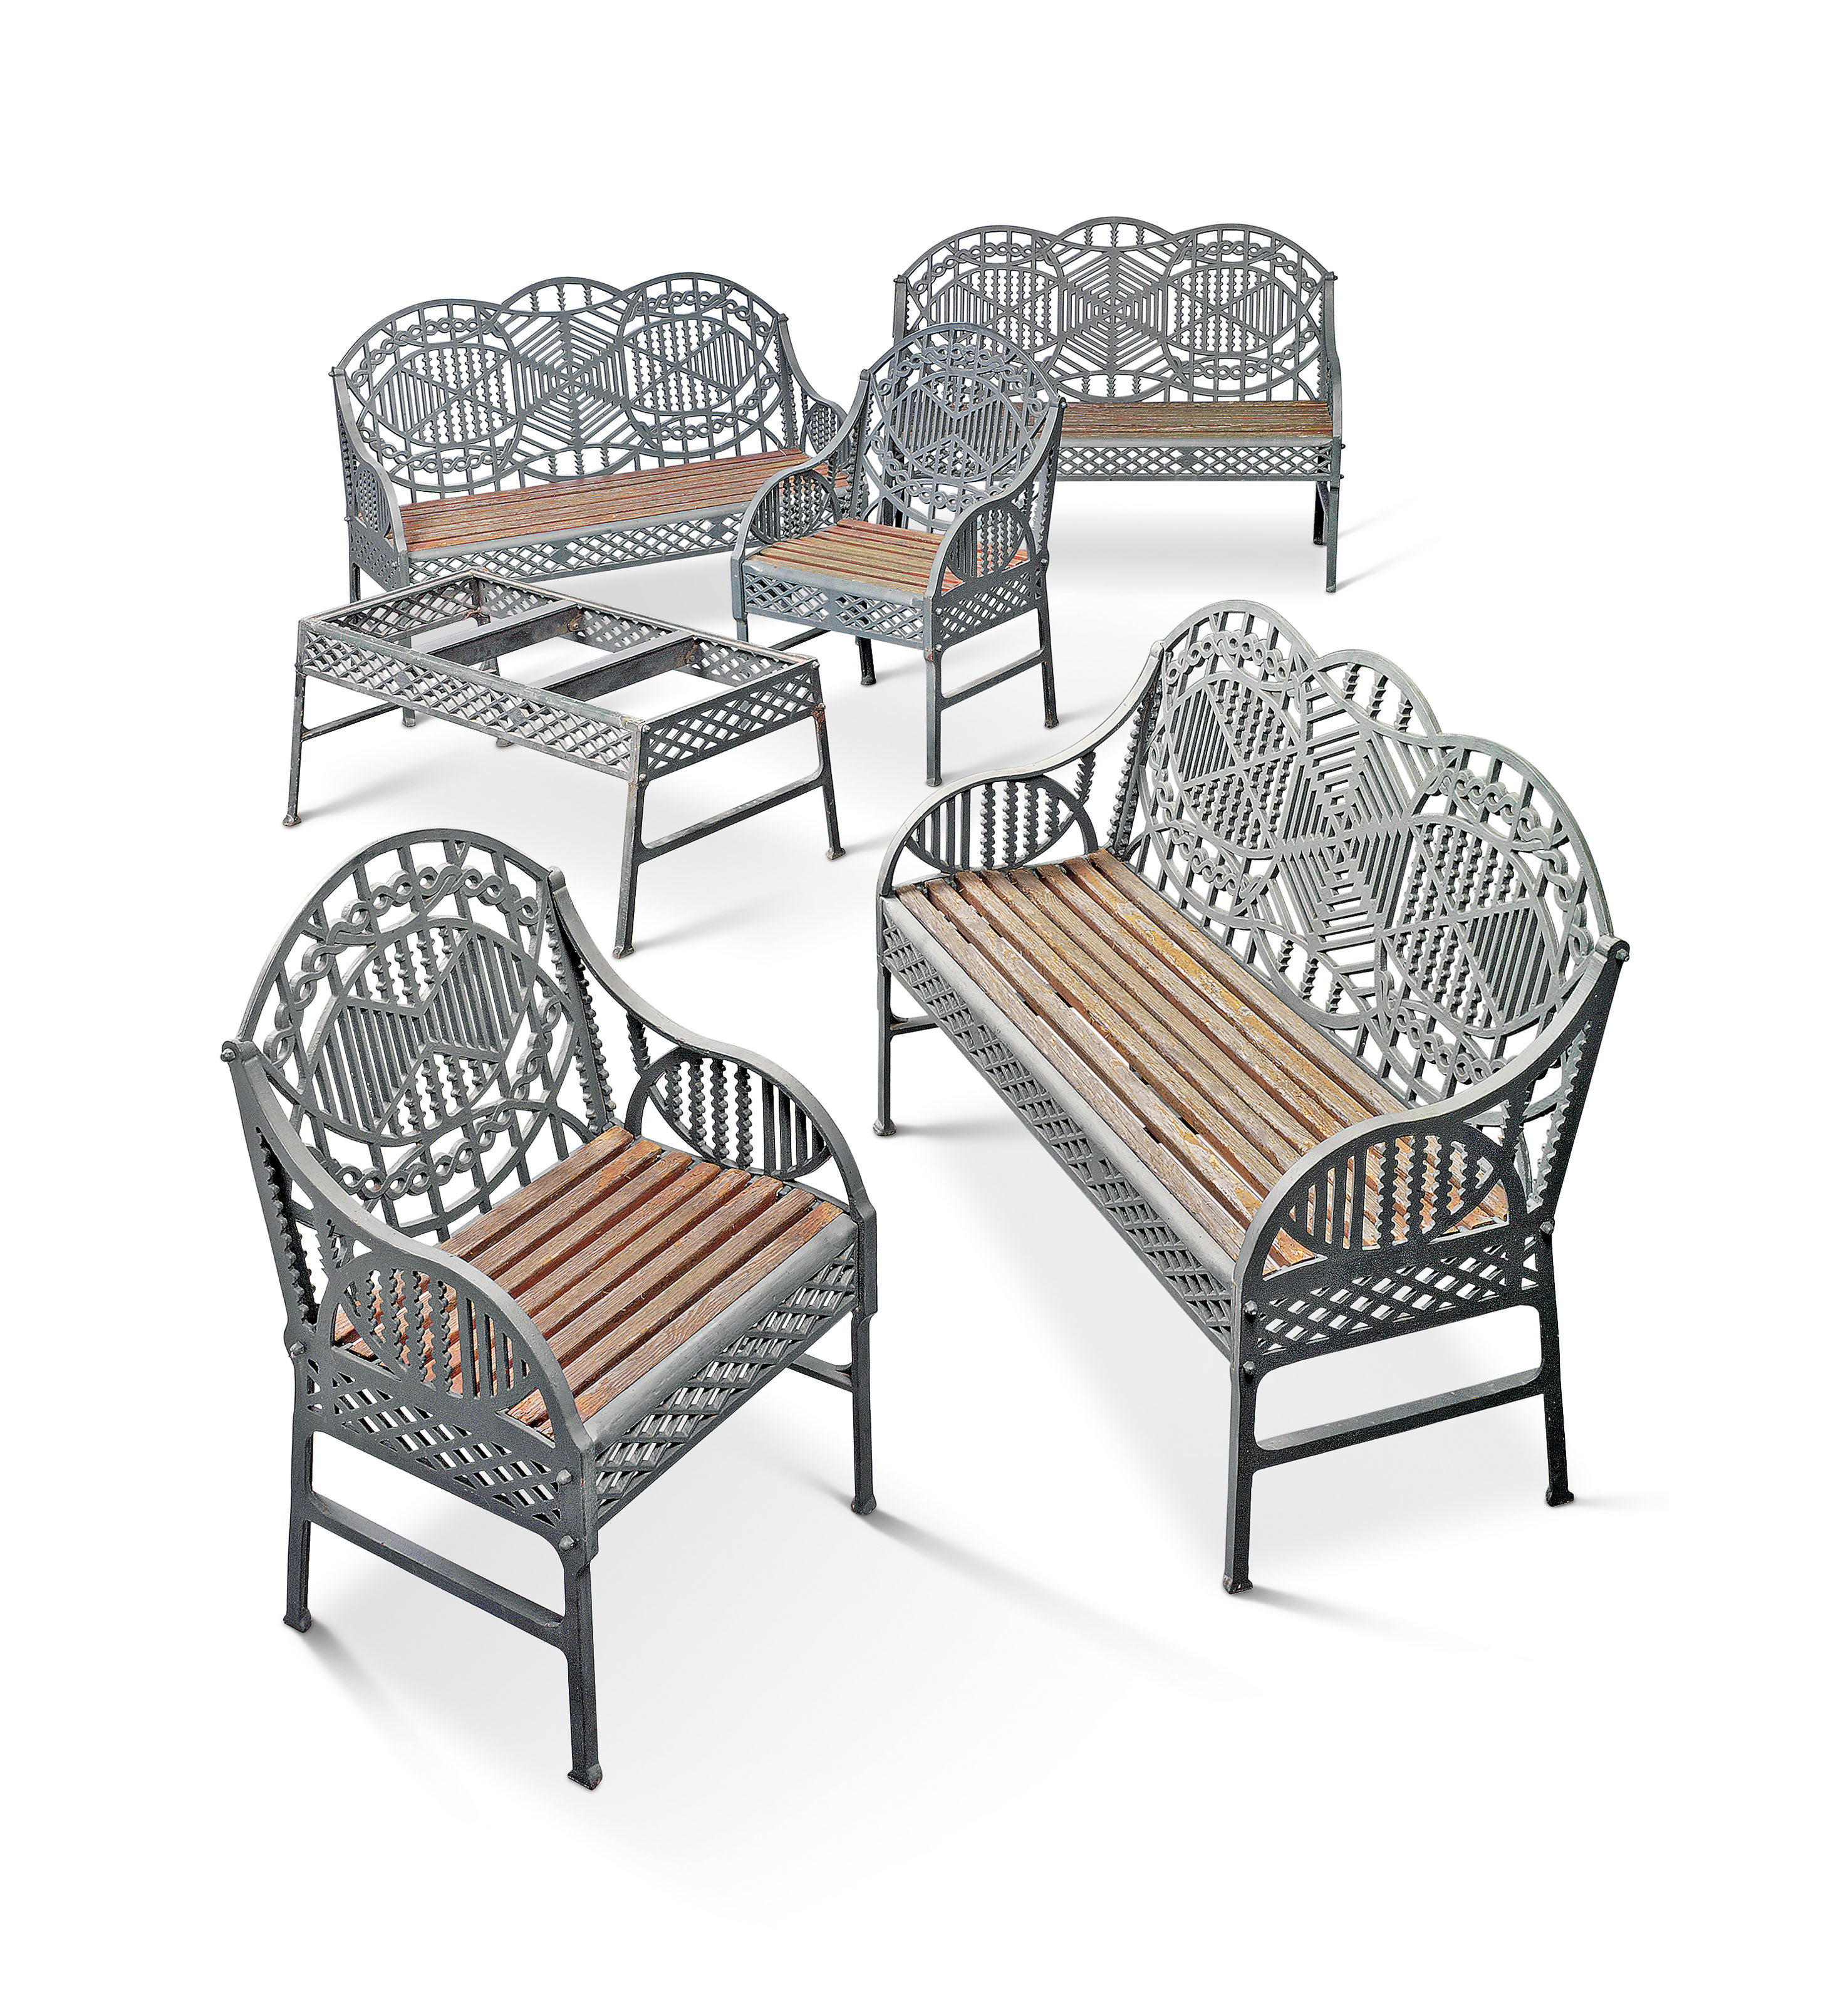 A SUITE OF GREEN-PAINTED CAST-IRON GARDEN FURNITURE